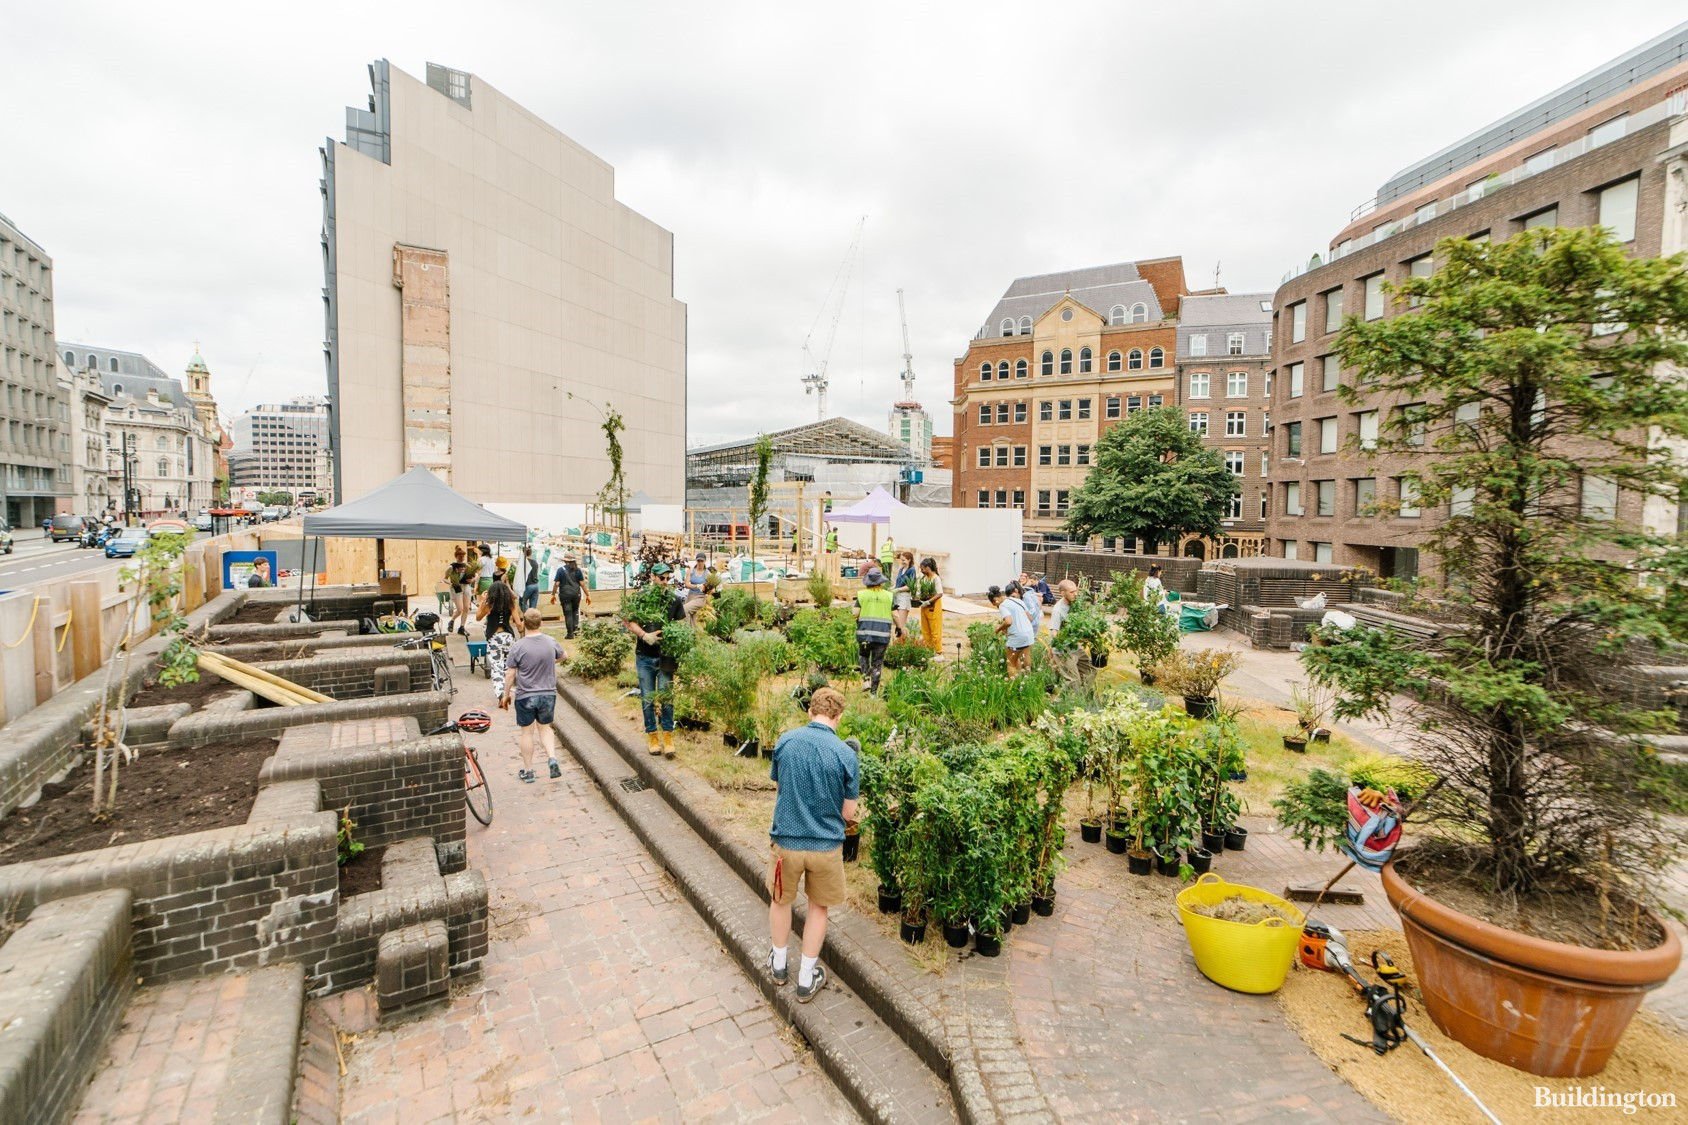 Citicape House site was launched as Gaia's Garden in Summer 2021. The community garden will be open until the development starts.